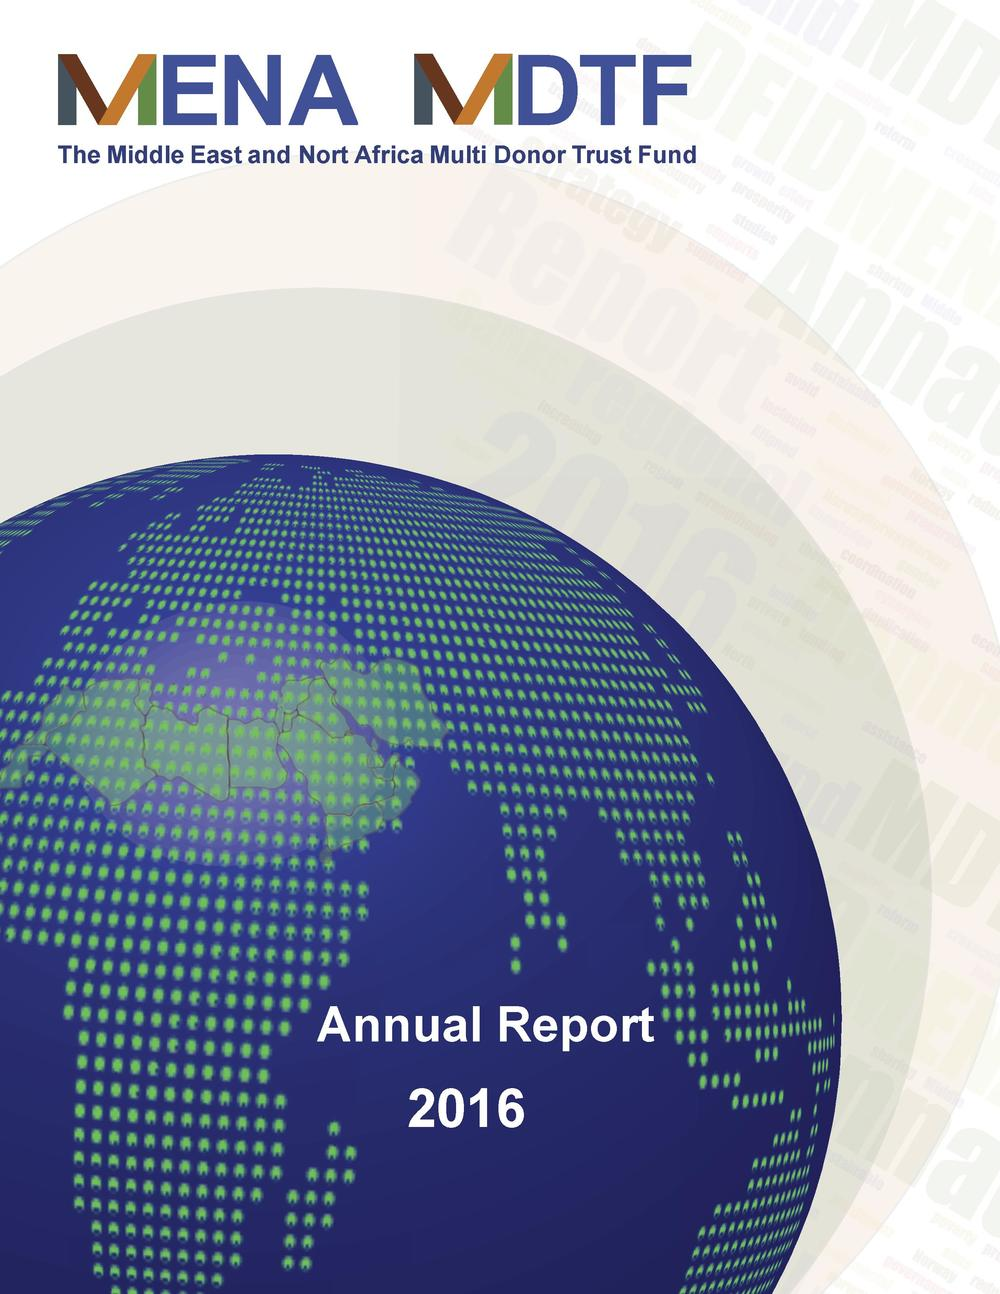 ENA  DTF  The Middle East and Nort Africa Multi Donor Trust Fund  Annual Report  2016